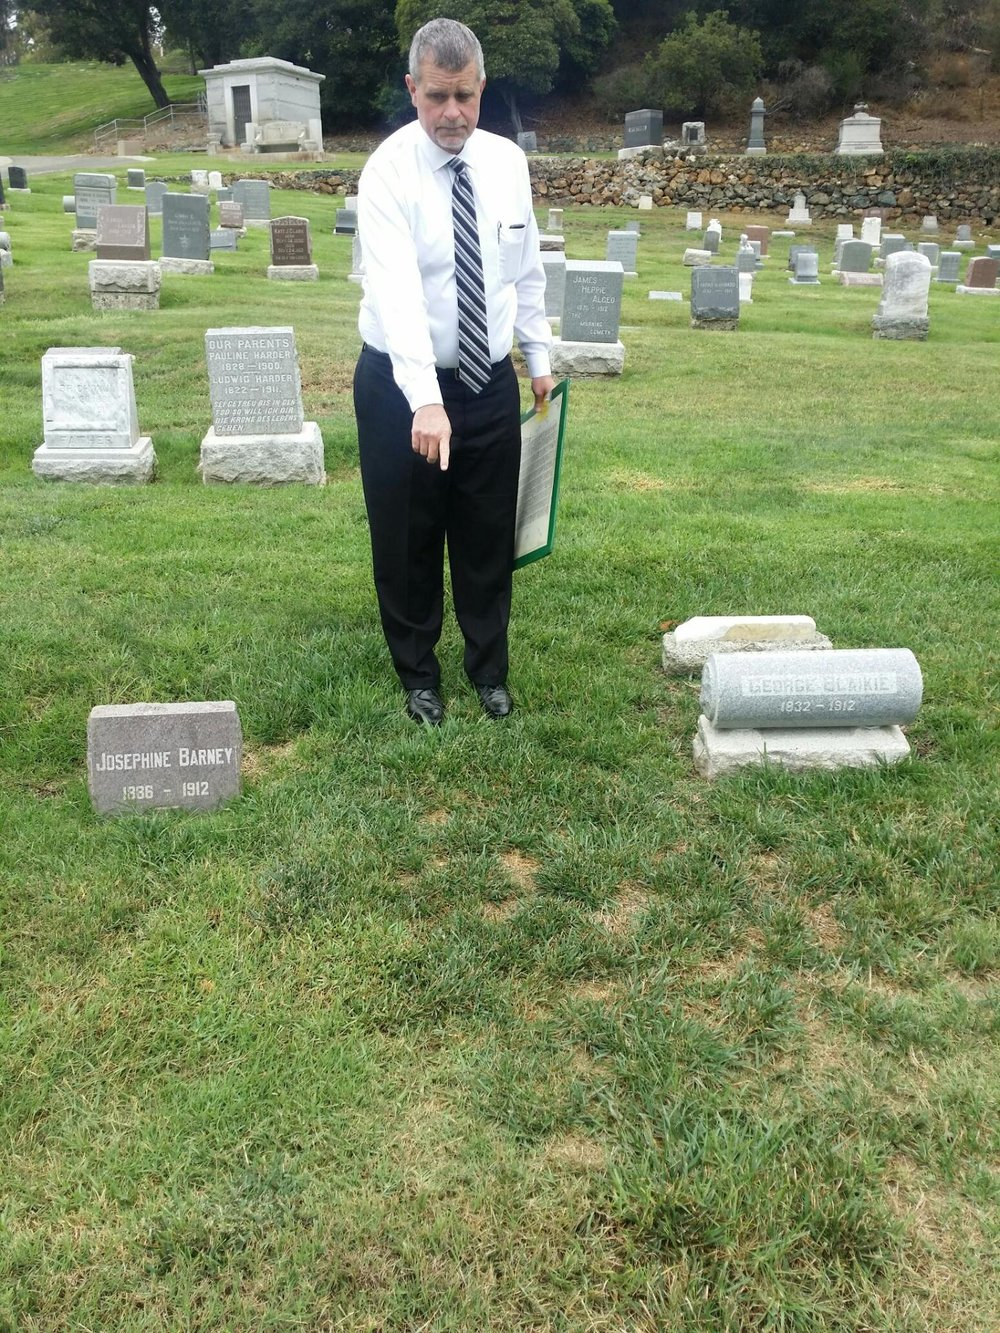 Scott Pennington, the General Manager of Sunset View cemetery in El Cerrito, points to the unmarked grave of Andrew W. Lindquist